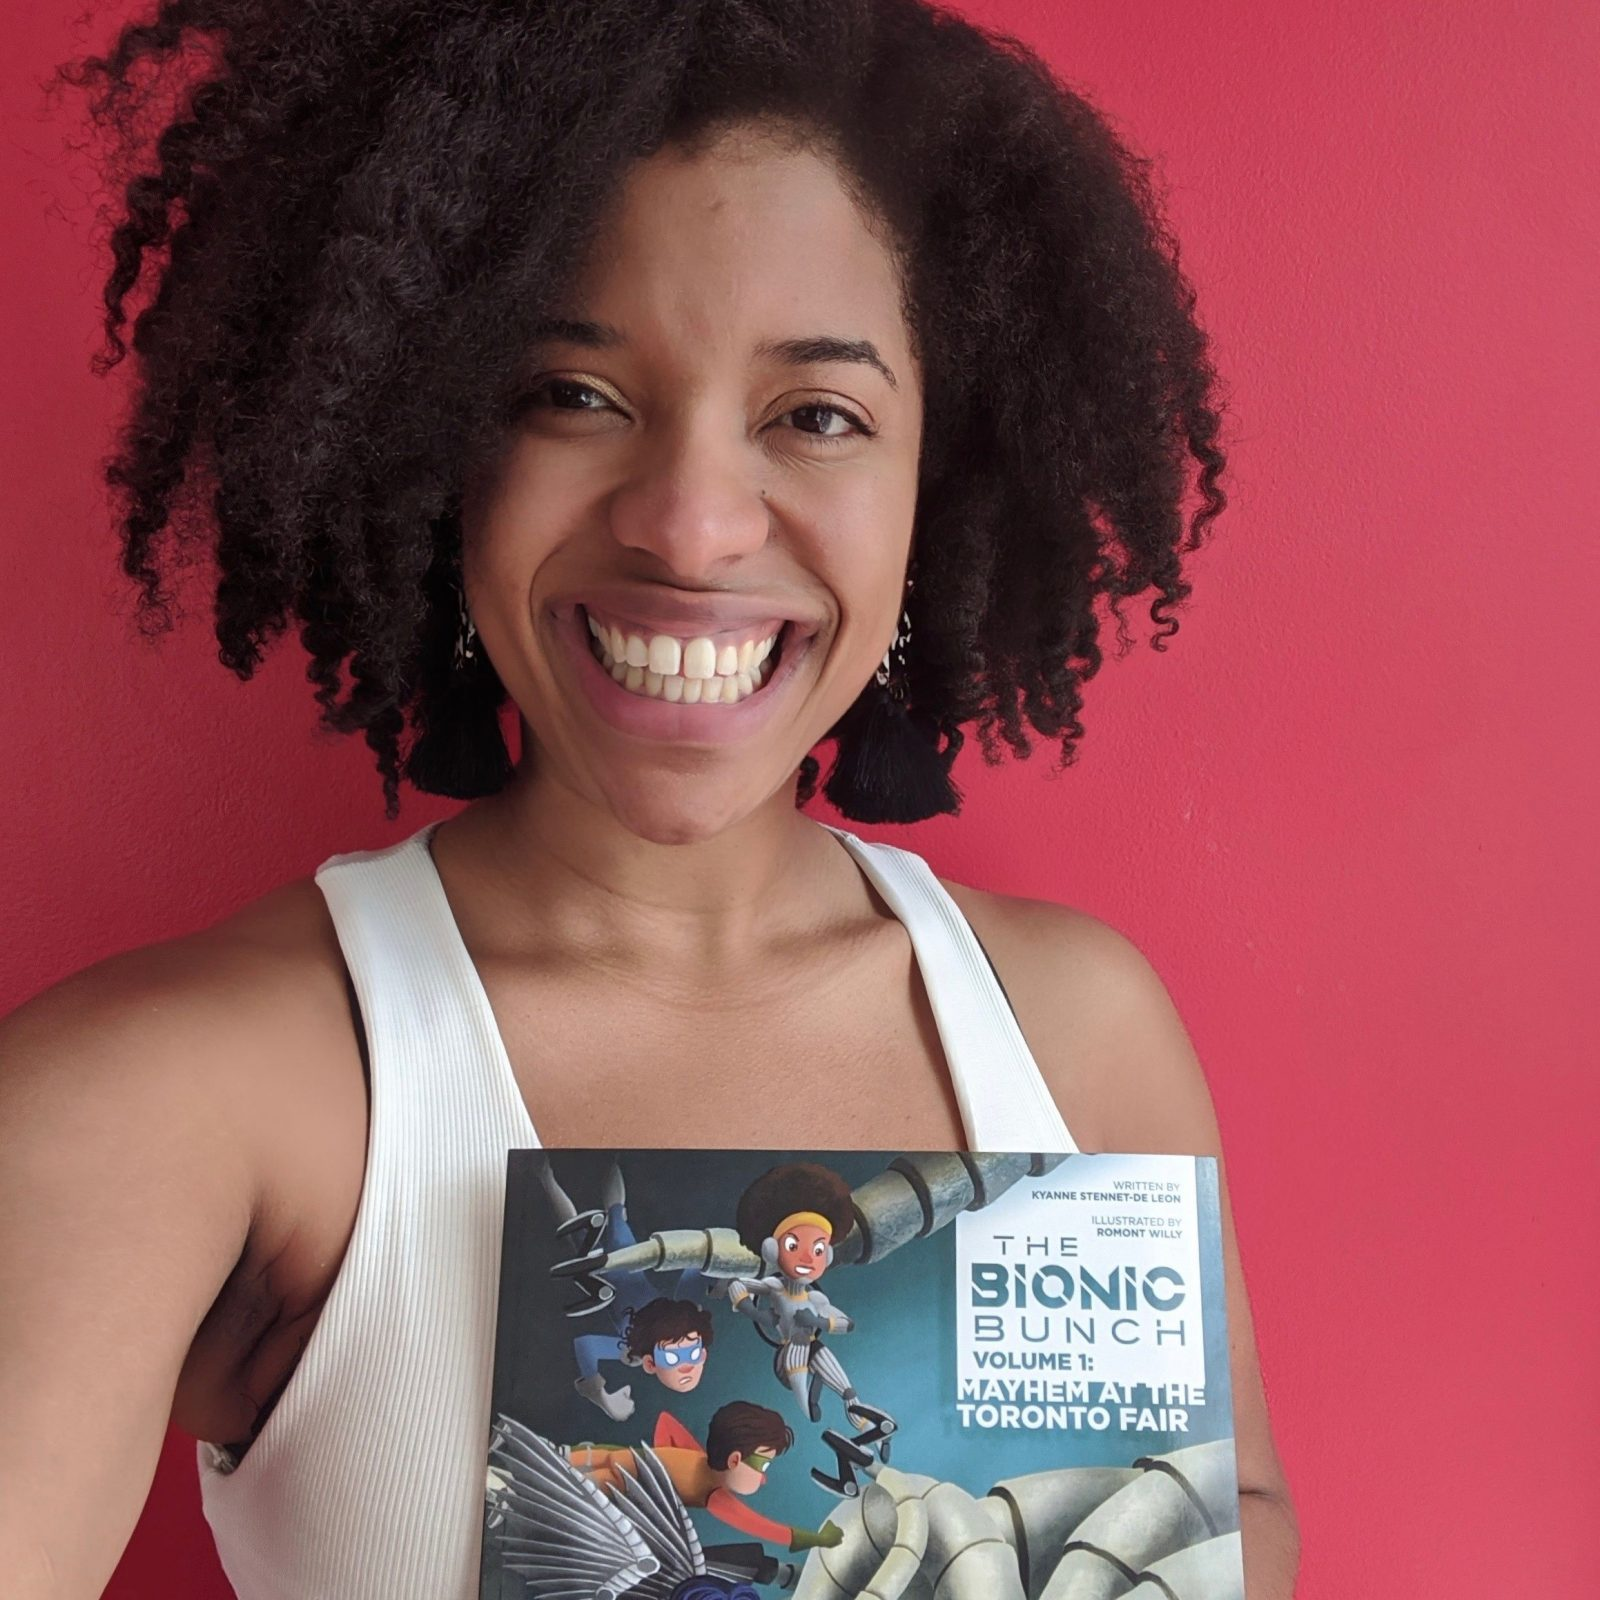 headshot selfie of kyanne stennett holding up 'the bionic bunch' children's book and smiling, against a red background